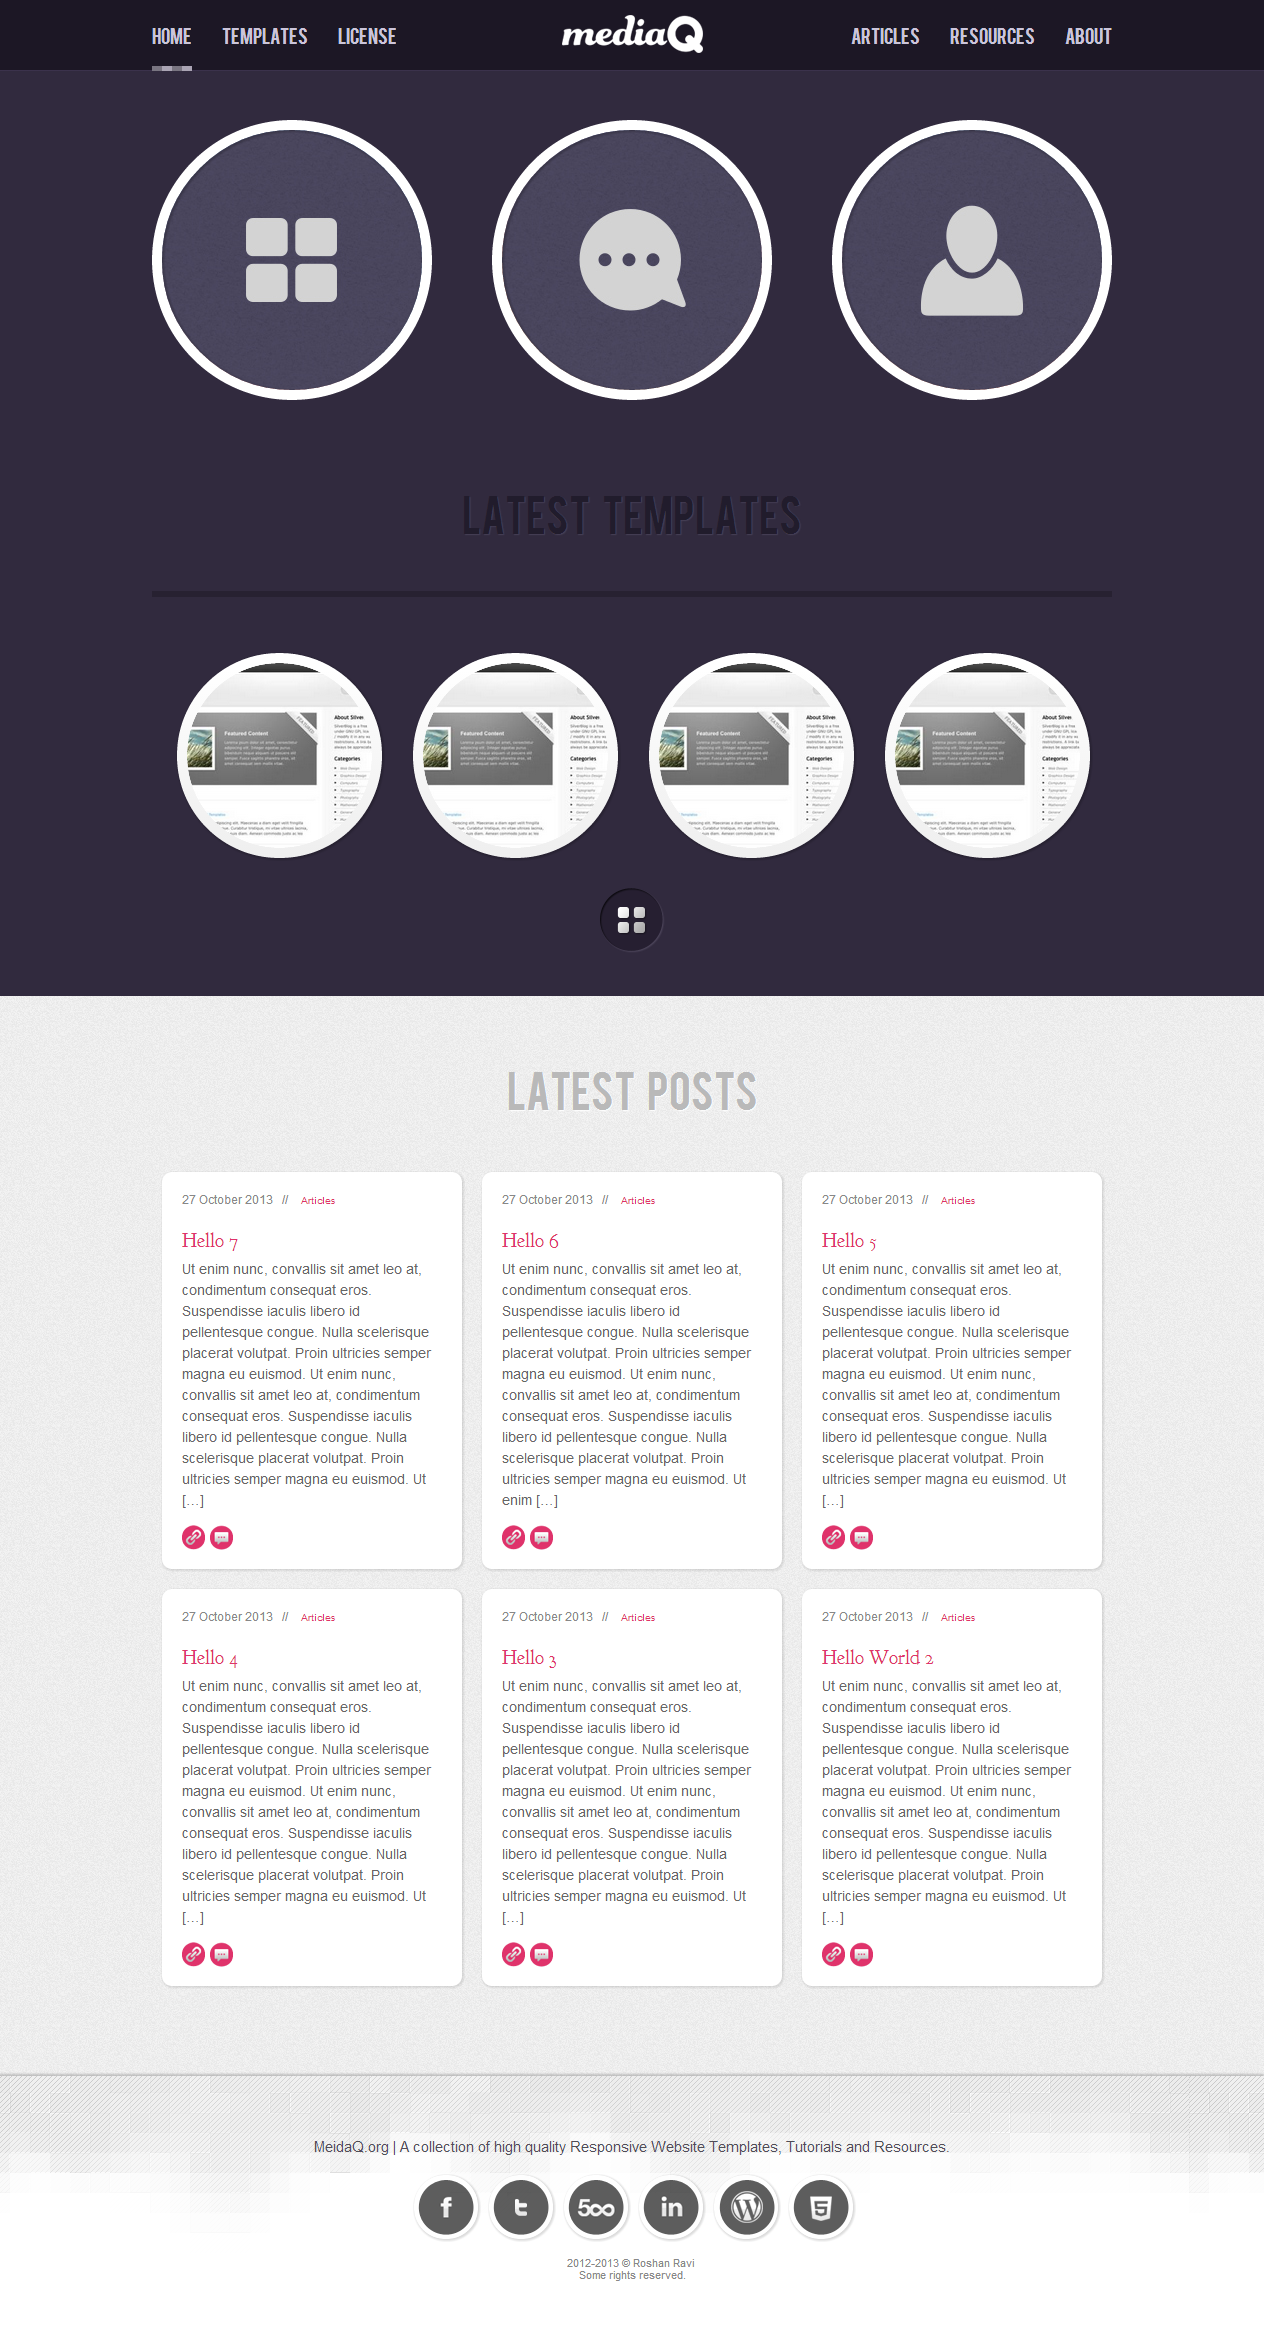 MediaQ.org | Responsive WordPress Theme